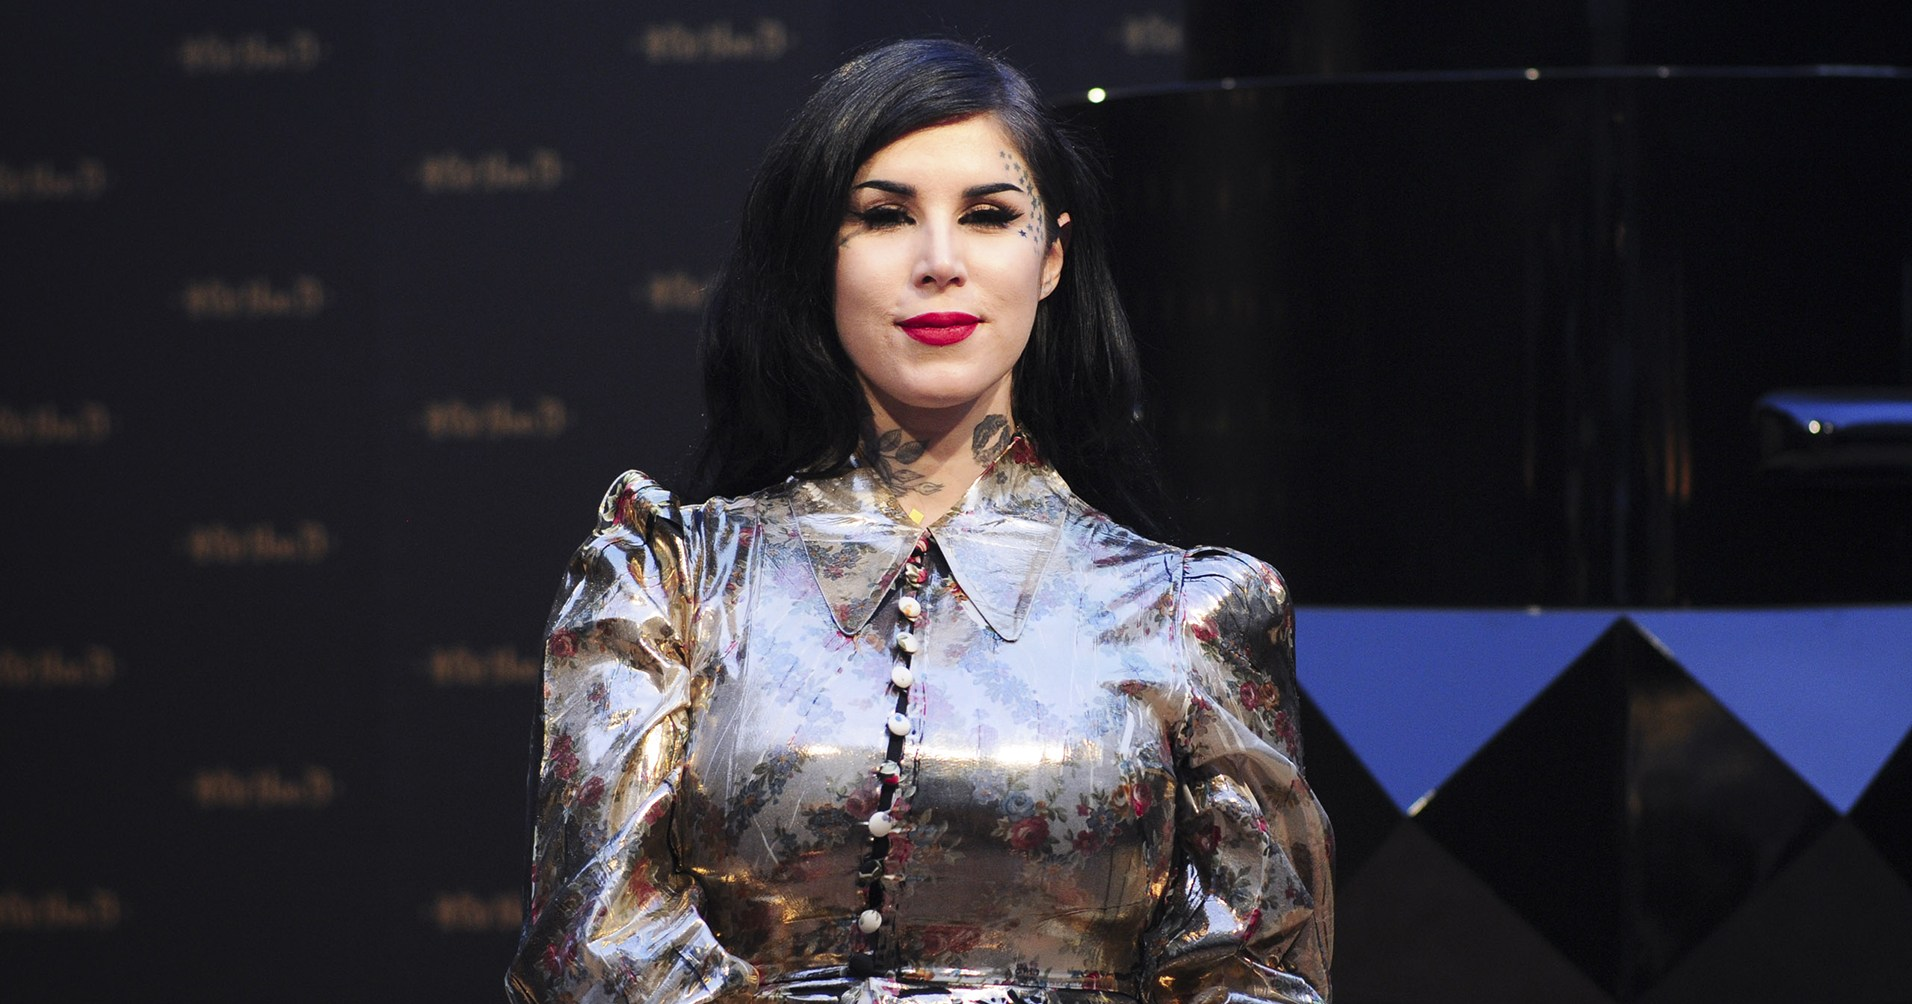 Kat Von D Recalls Asking for Breastmilk Donation for Baby Son